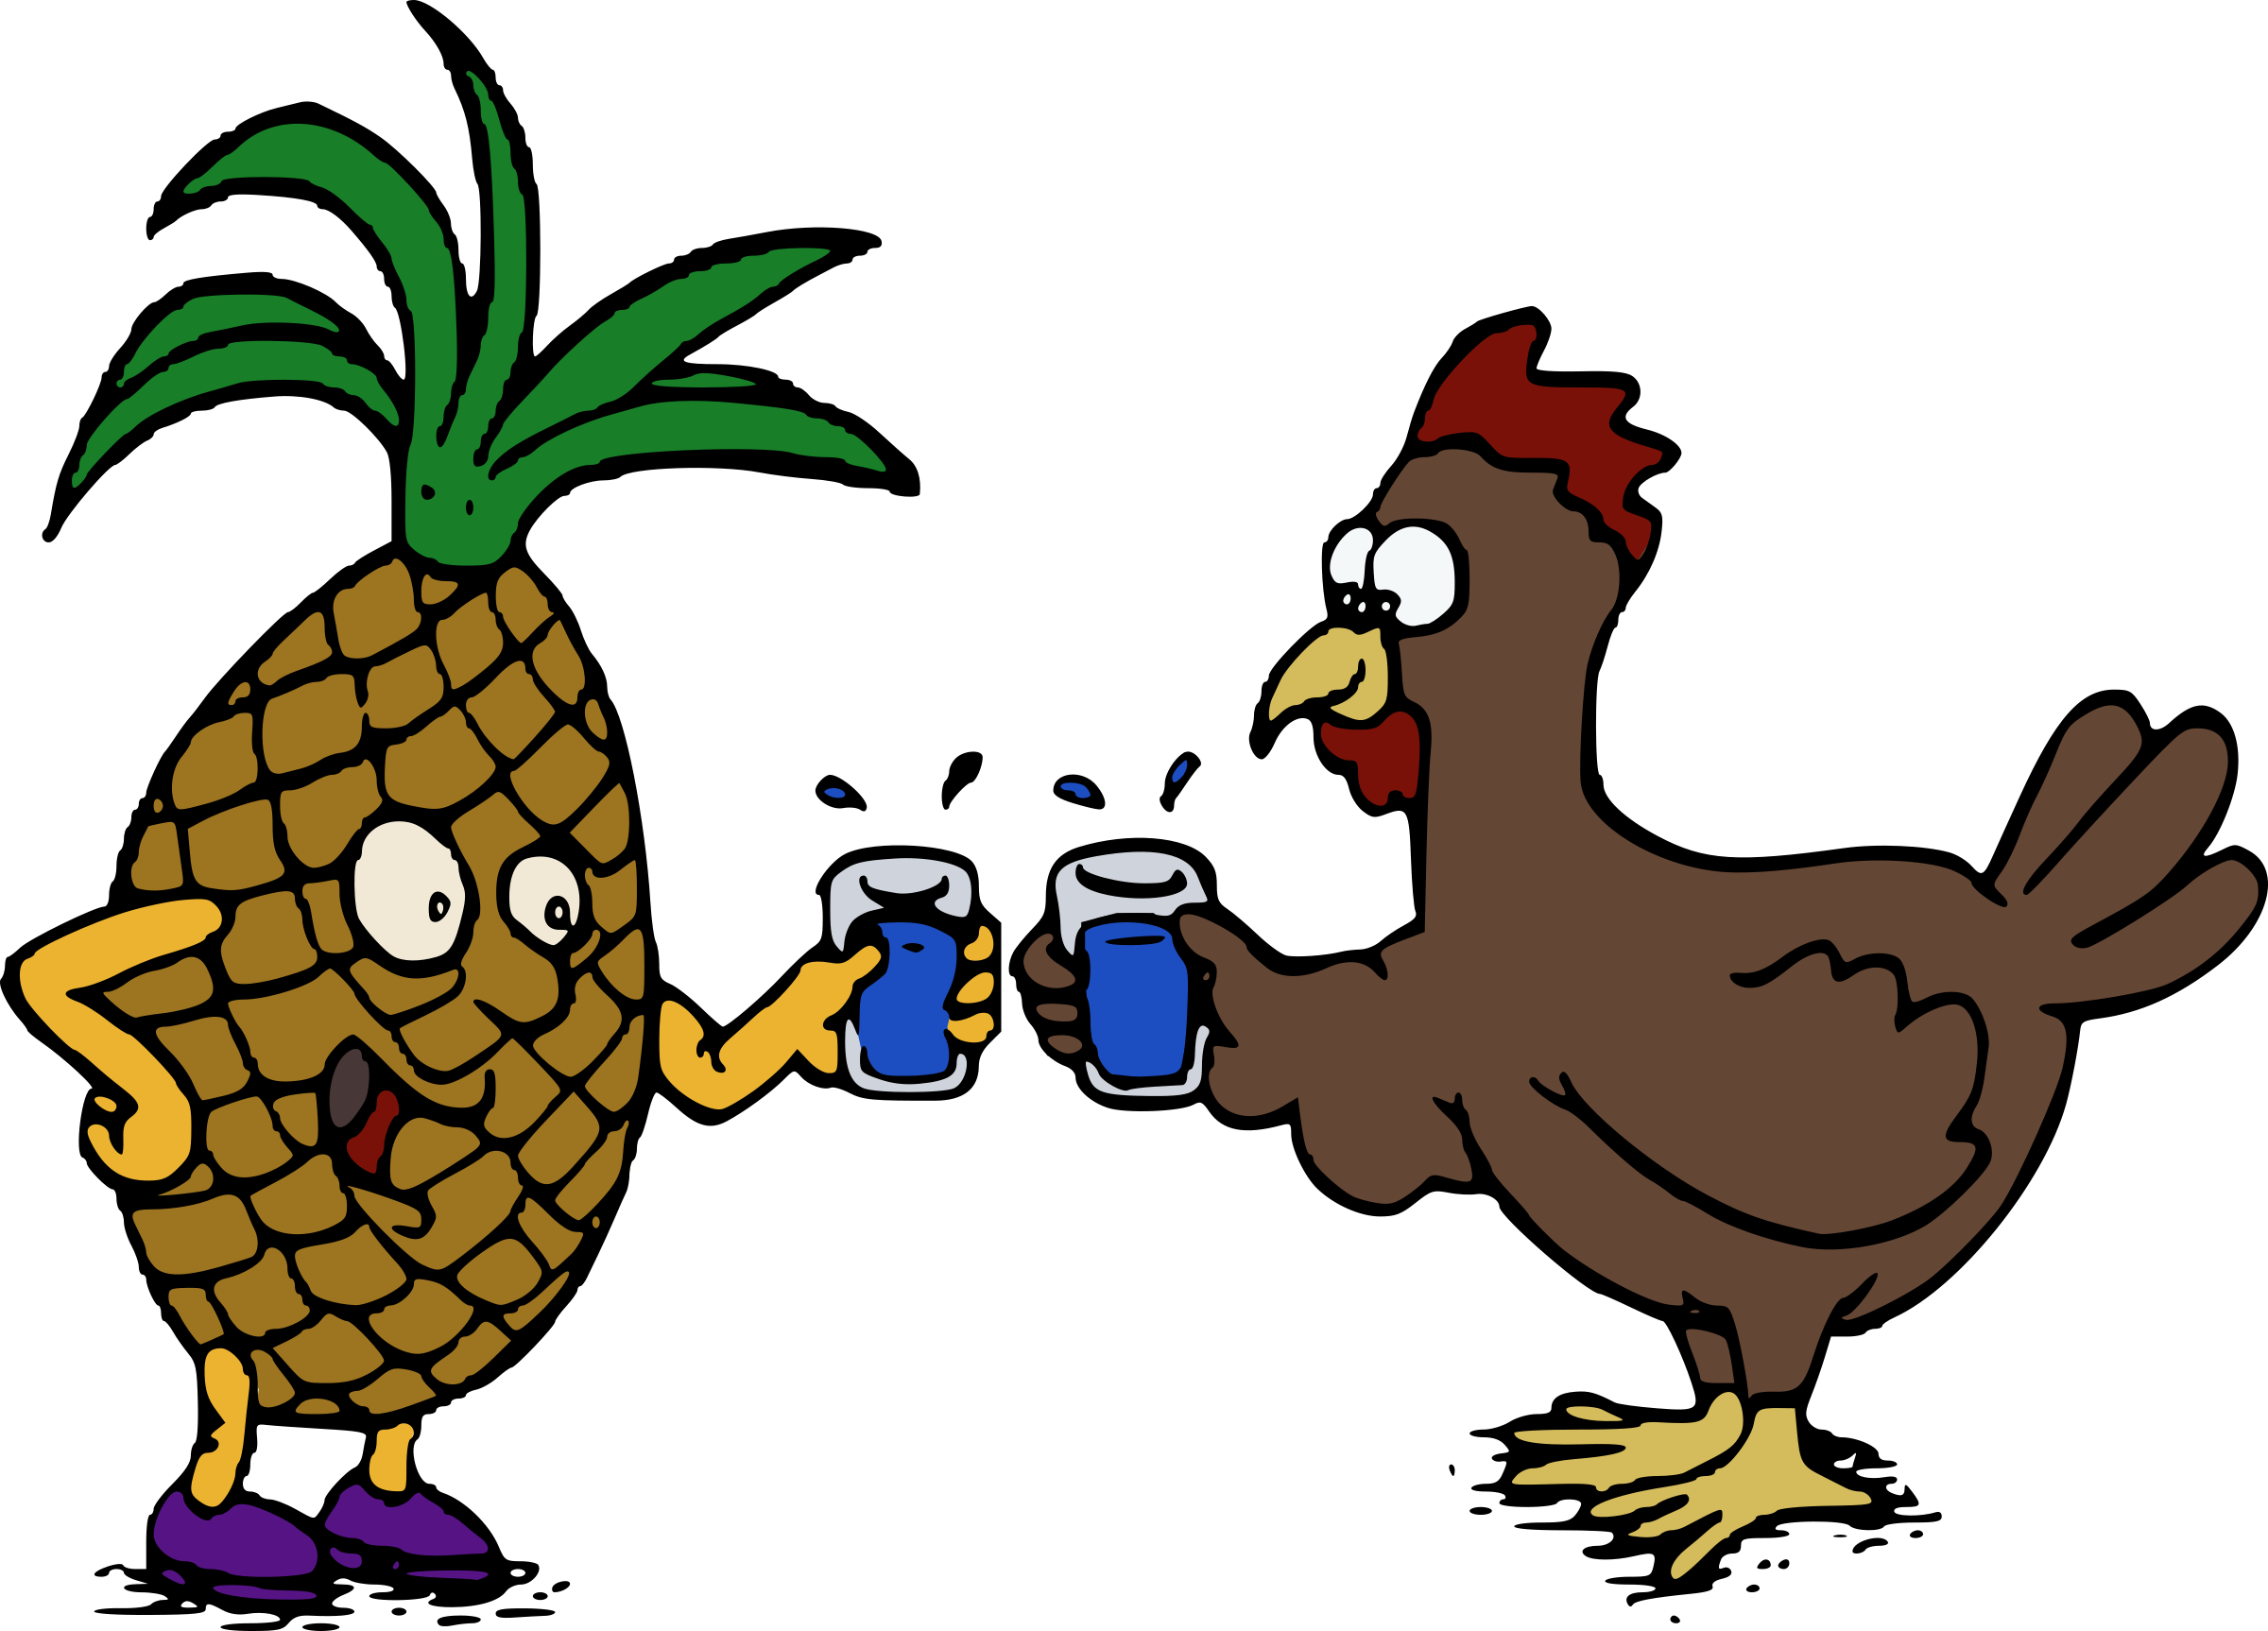 Pineapple and Chicken - Cheers! by j4p4n